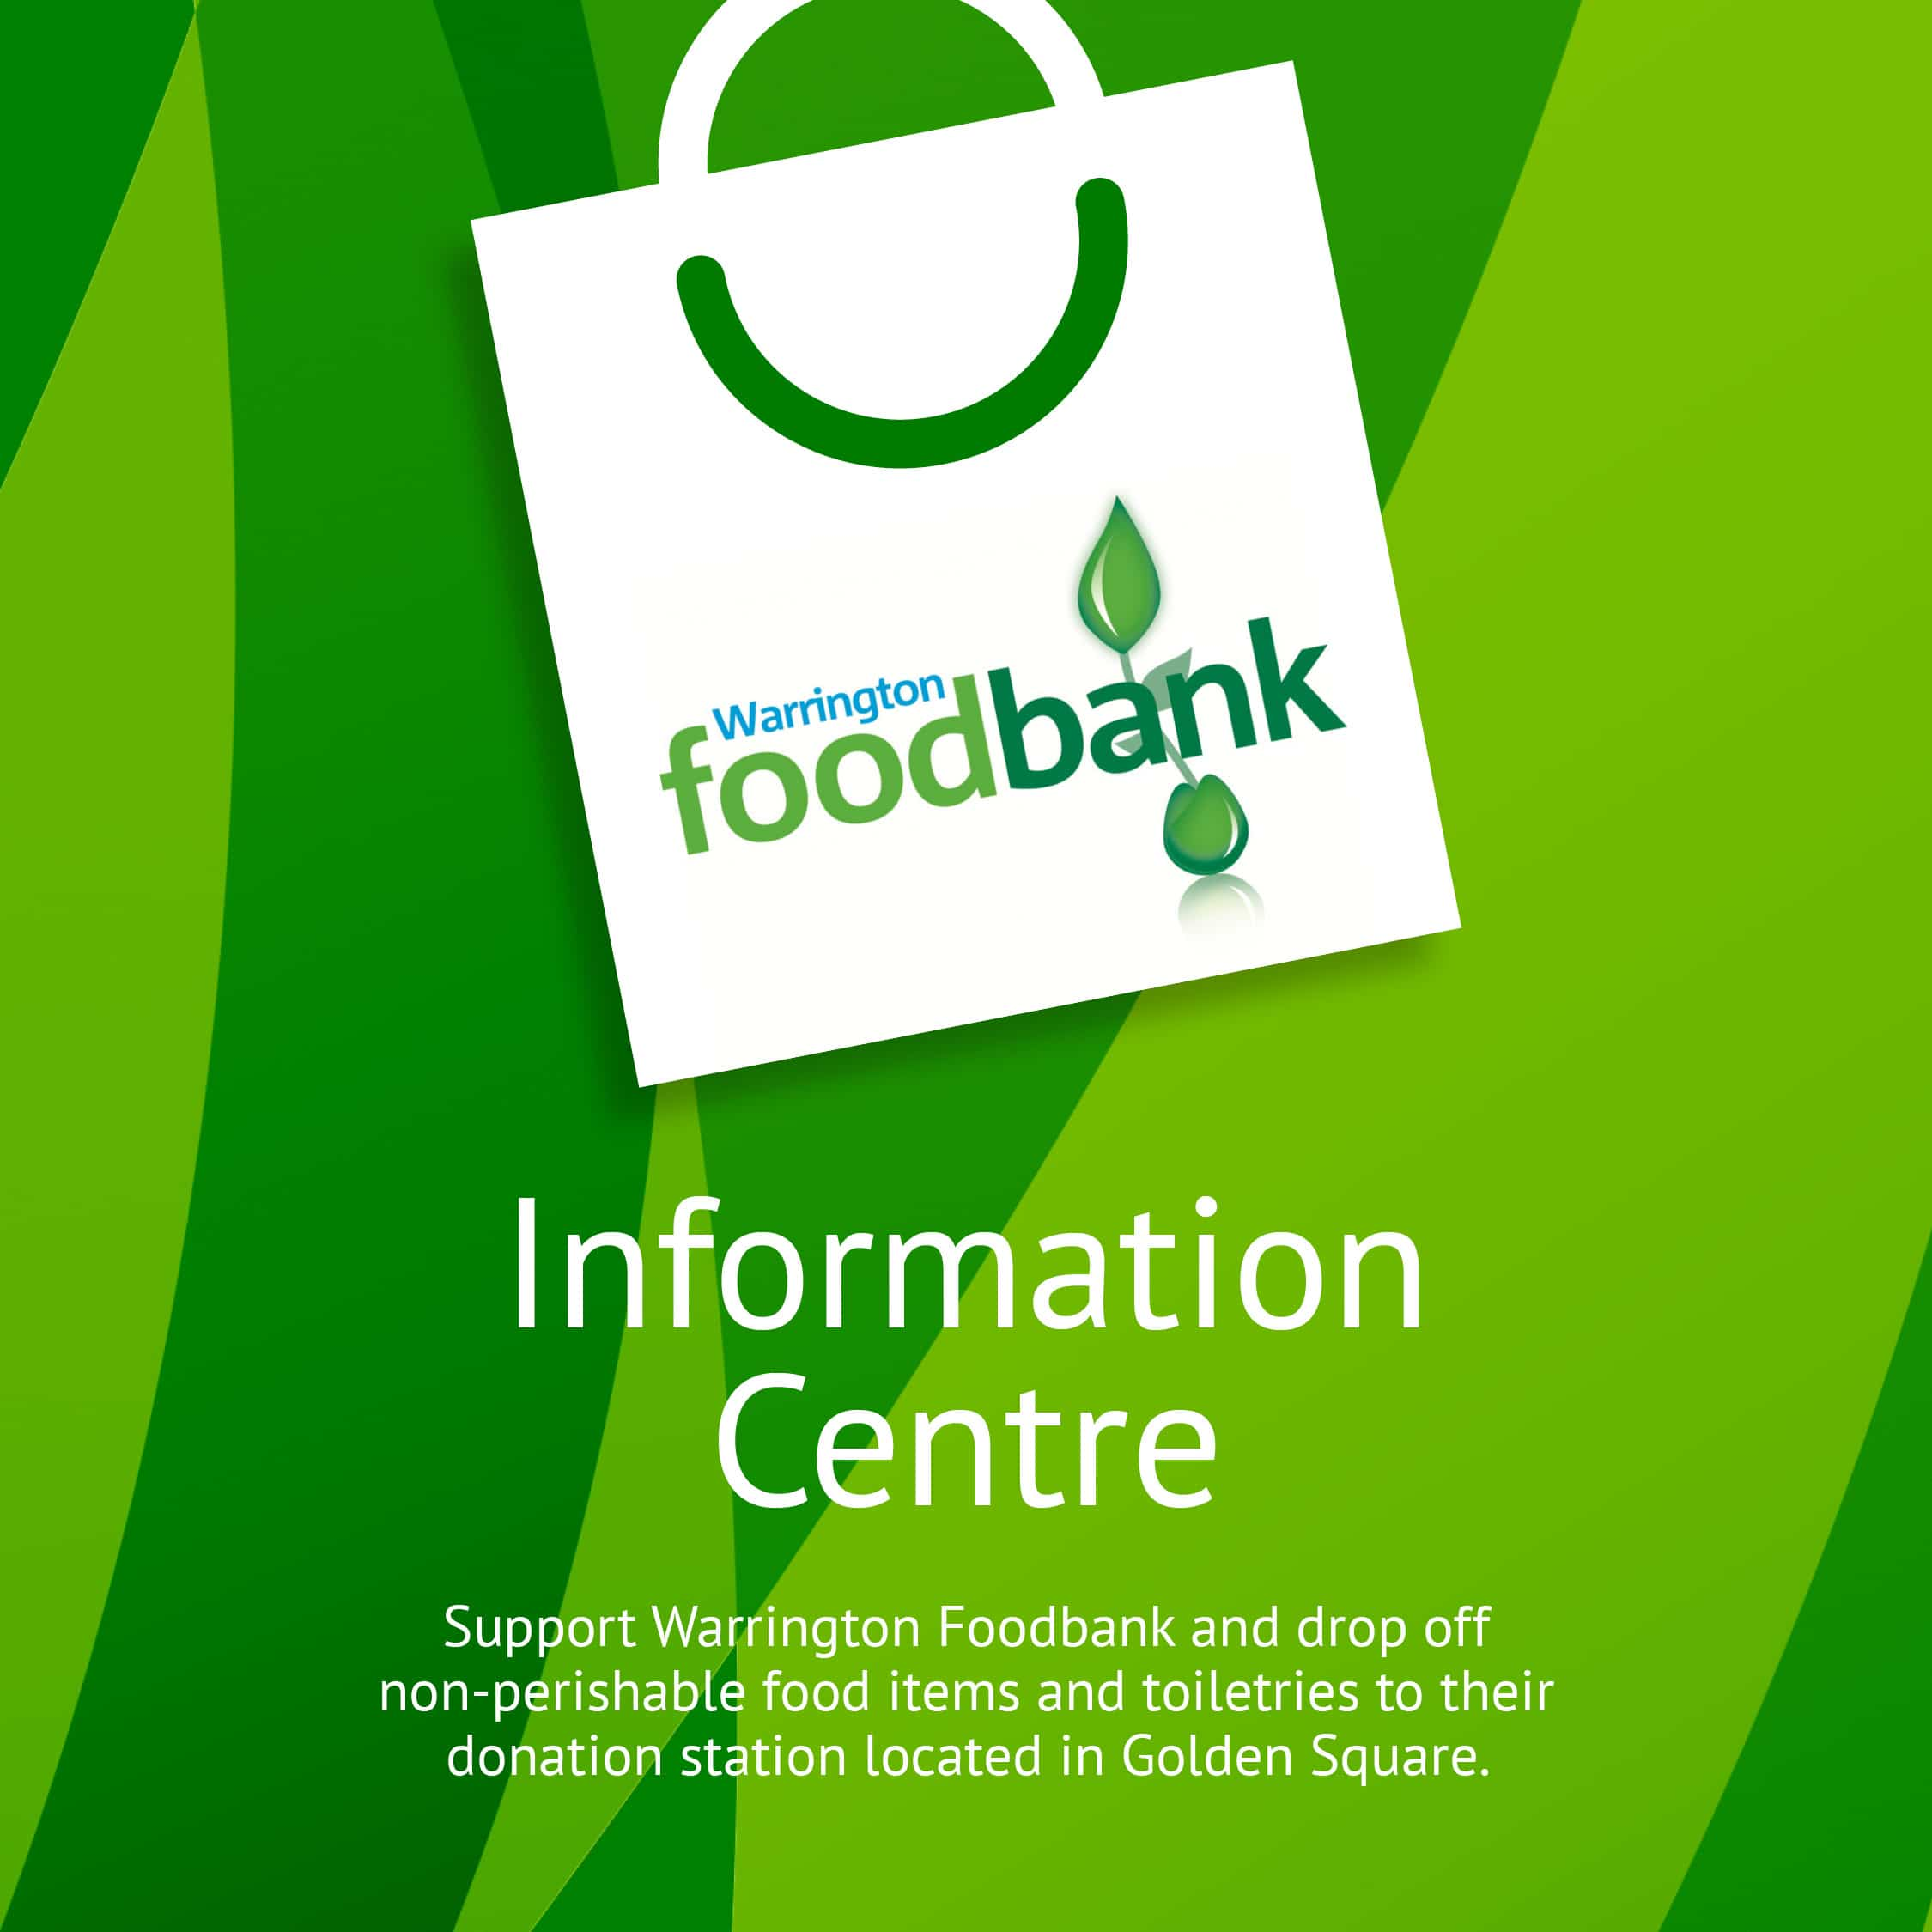 Warrington Foodbank Information Centre